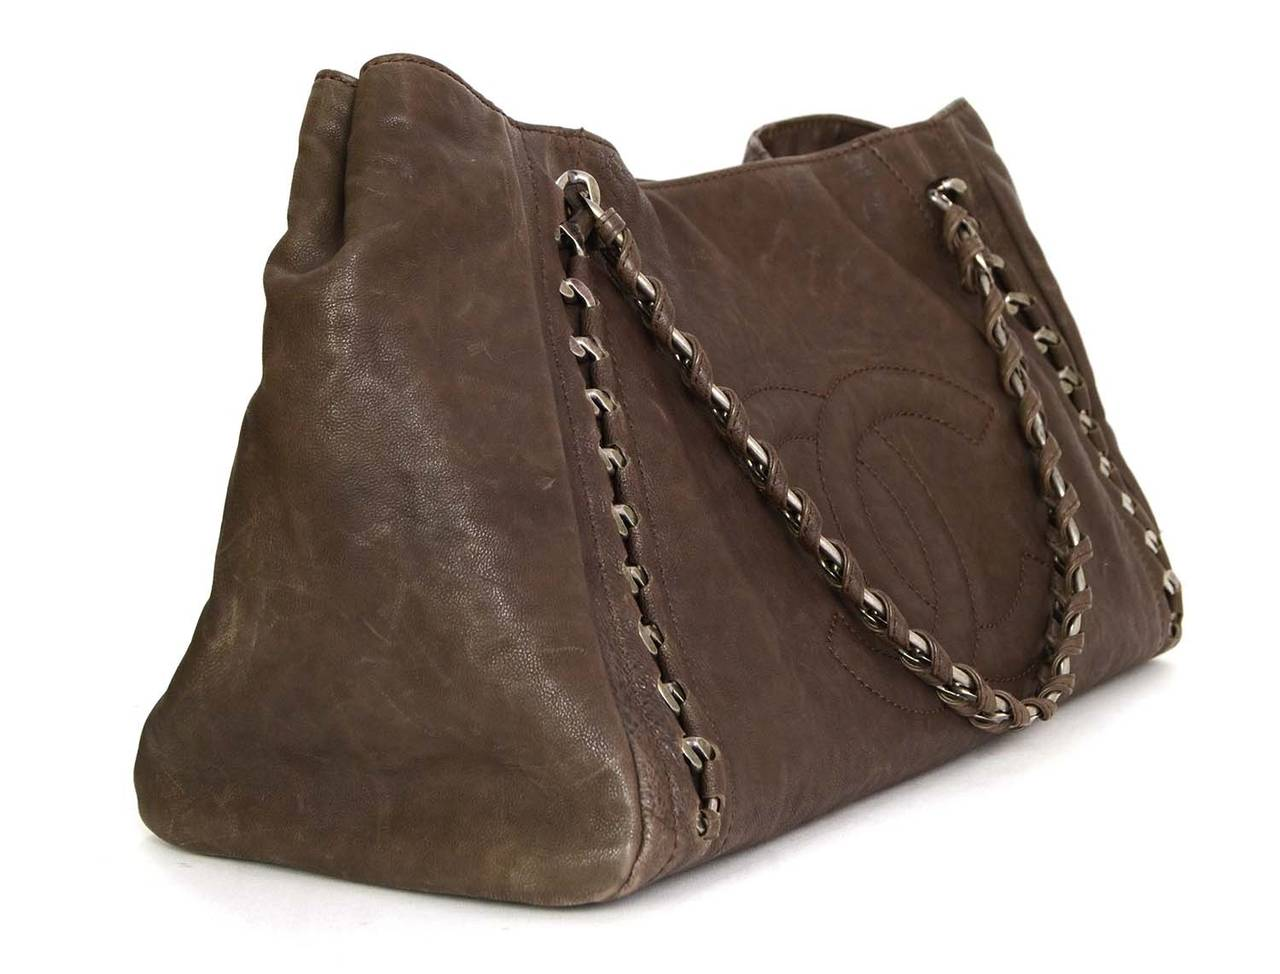 Chanel Brown Distressed Leather Tote Features Silvertone Chain Throughout Exterior As Well Large Embossed Cc